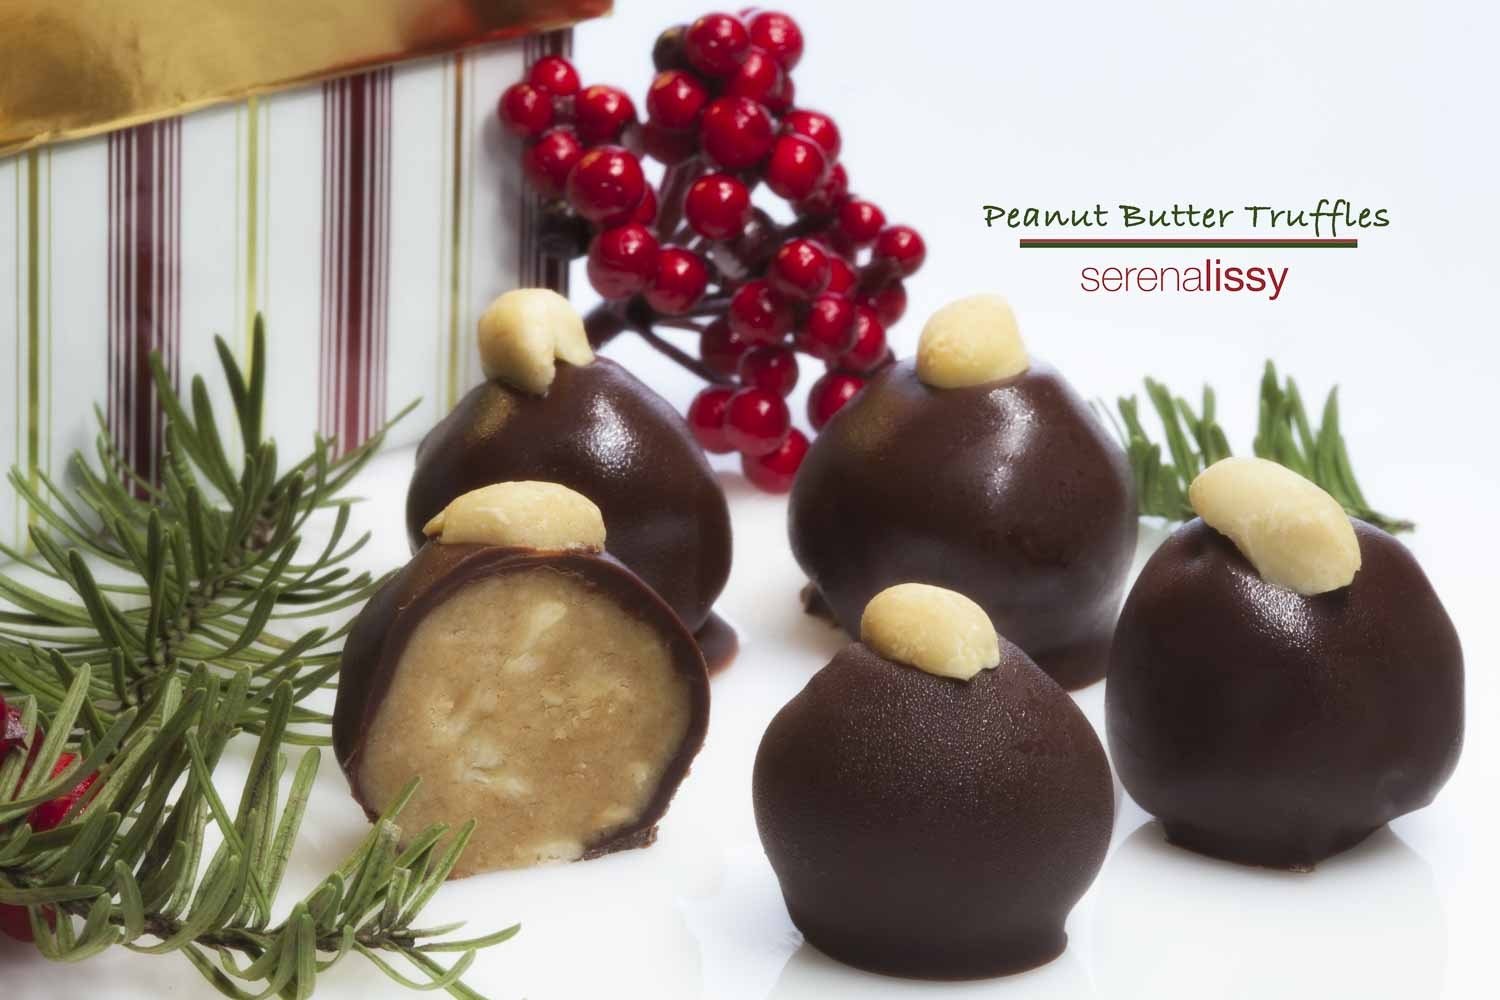 Five peanut butter truffles